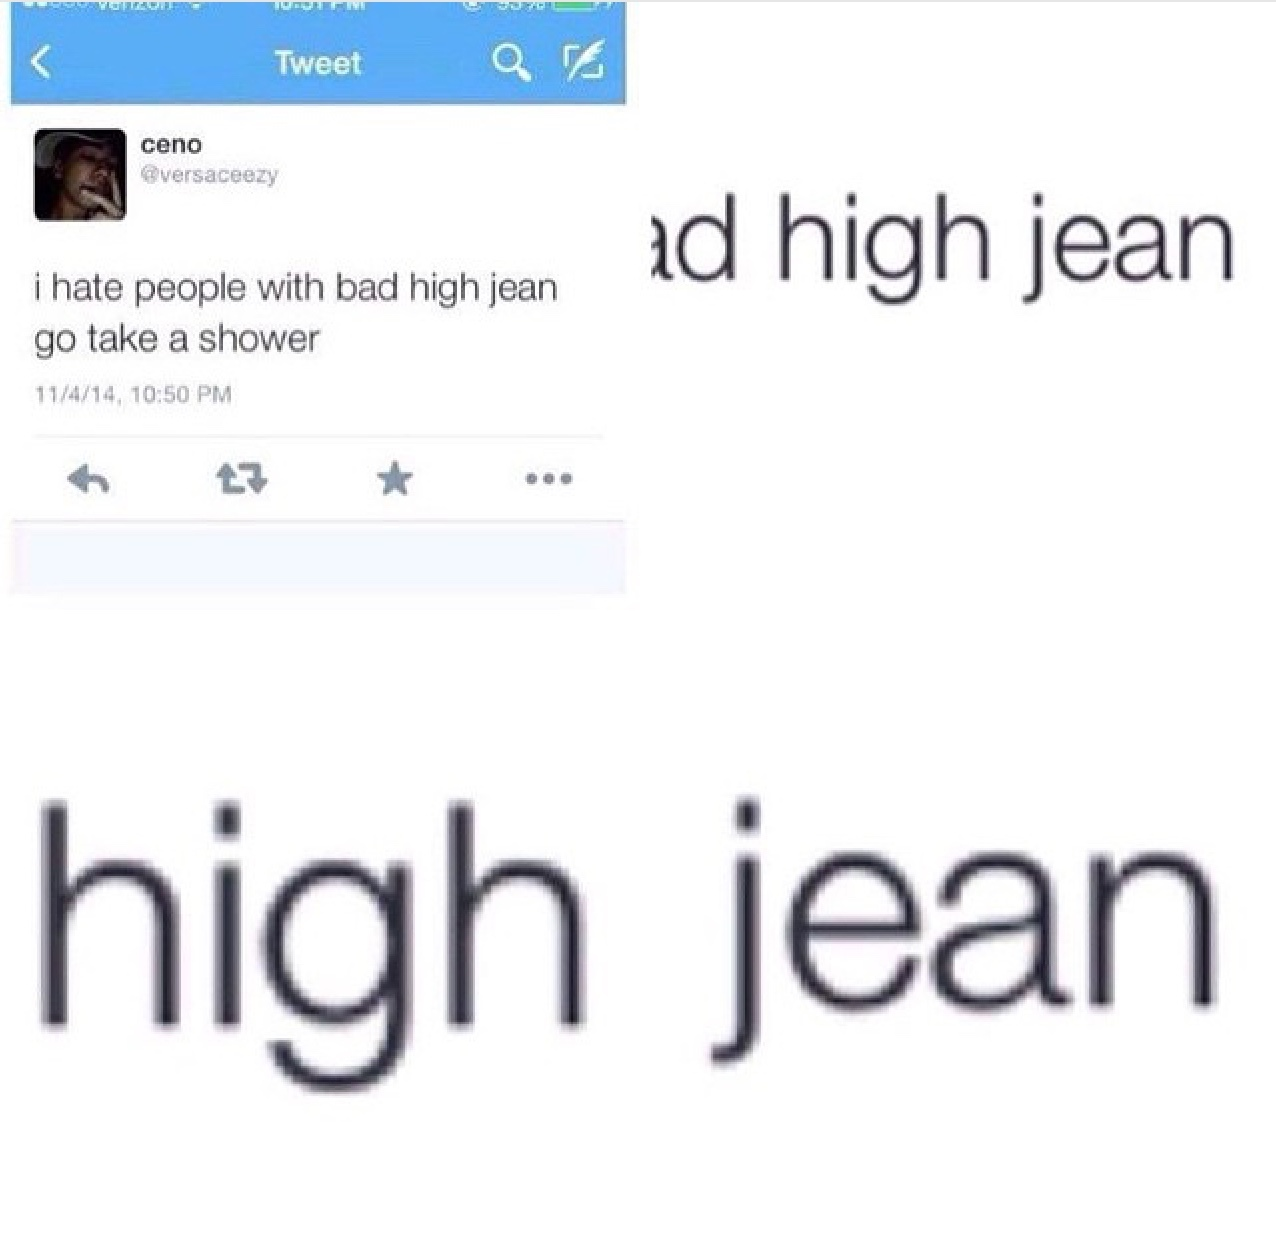 4th comment has bad high jean - meme